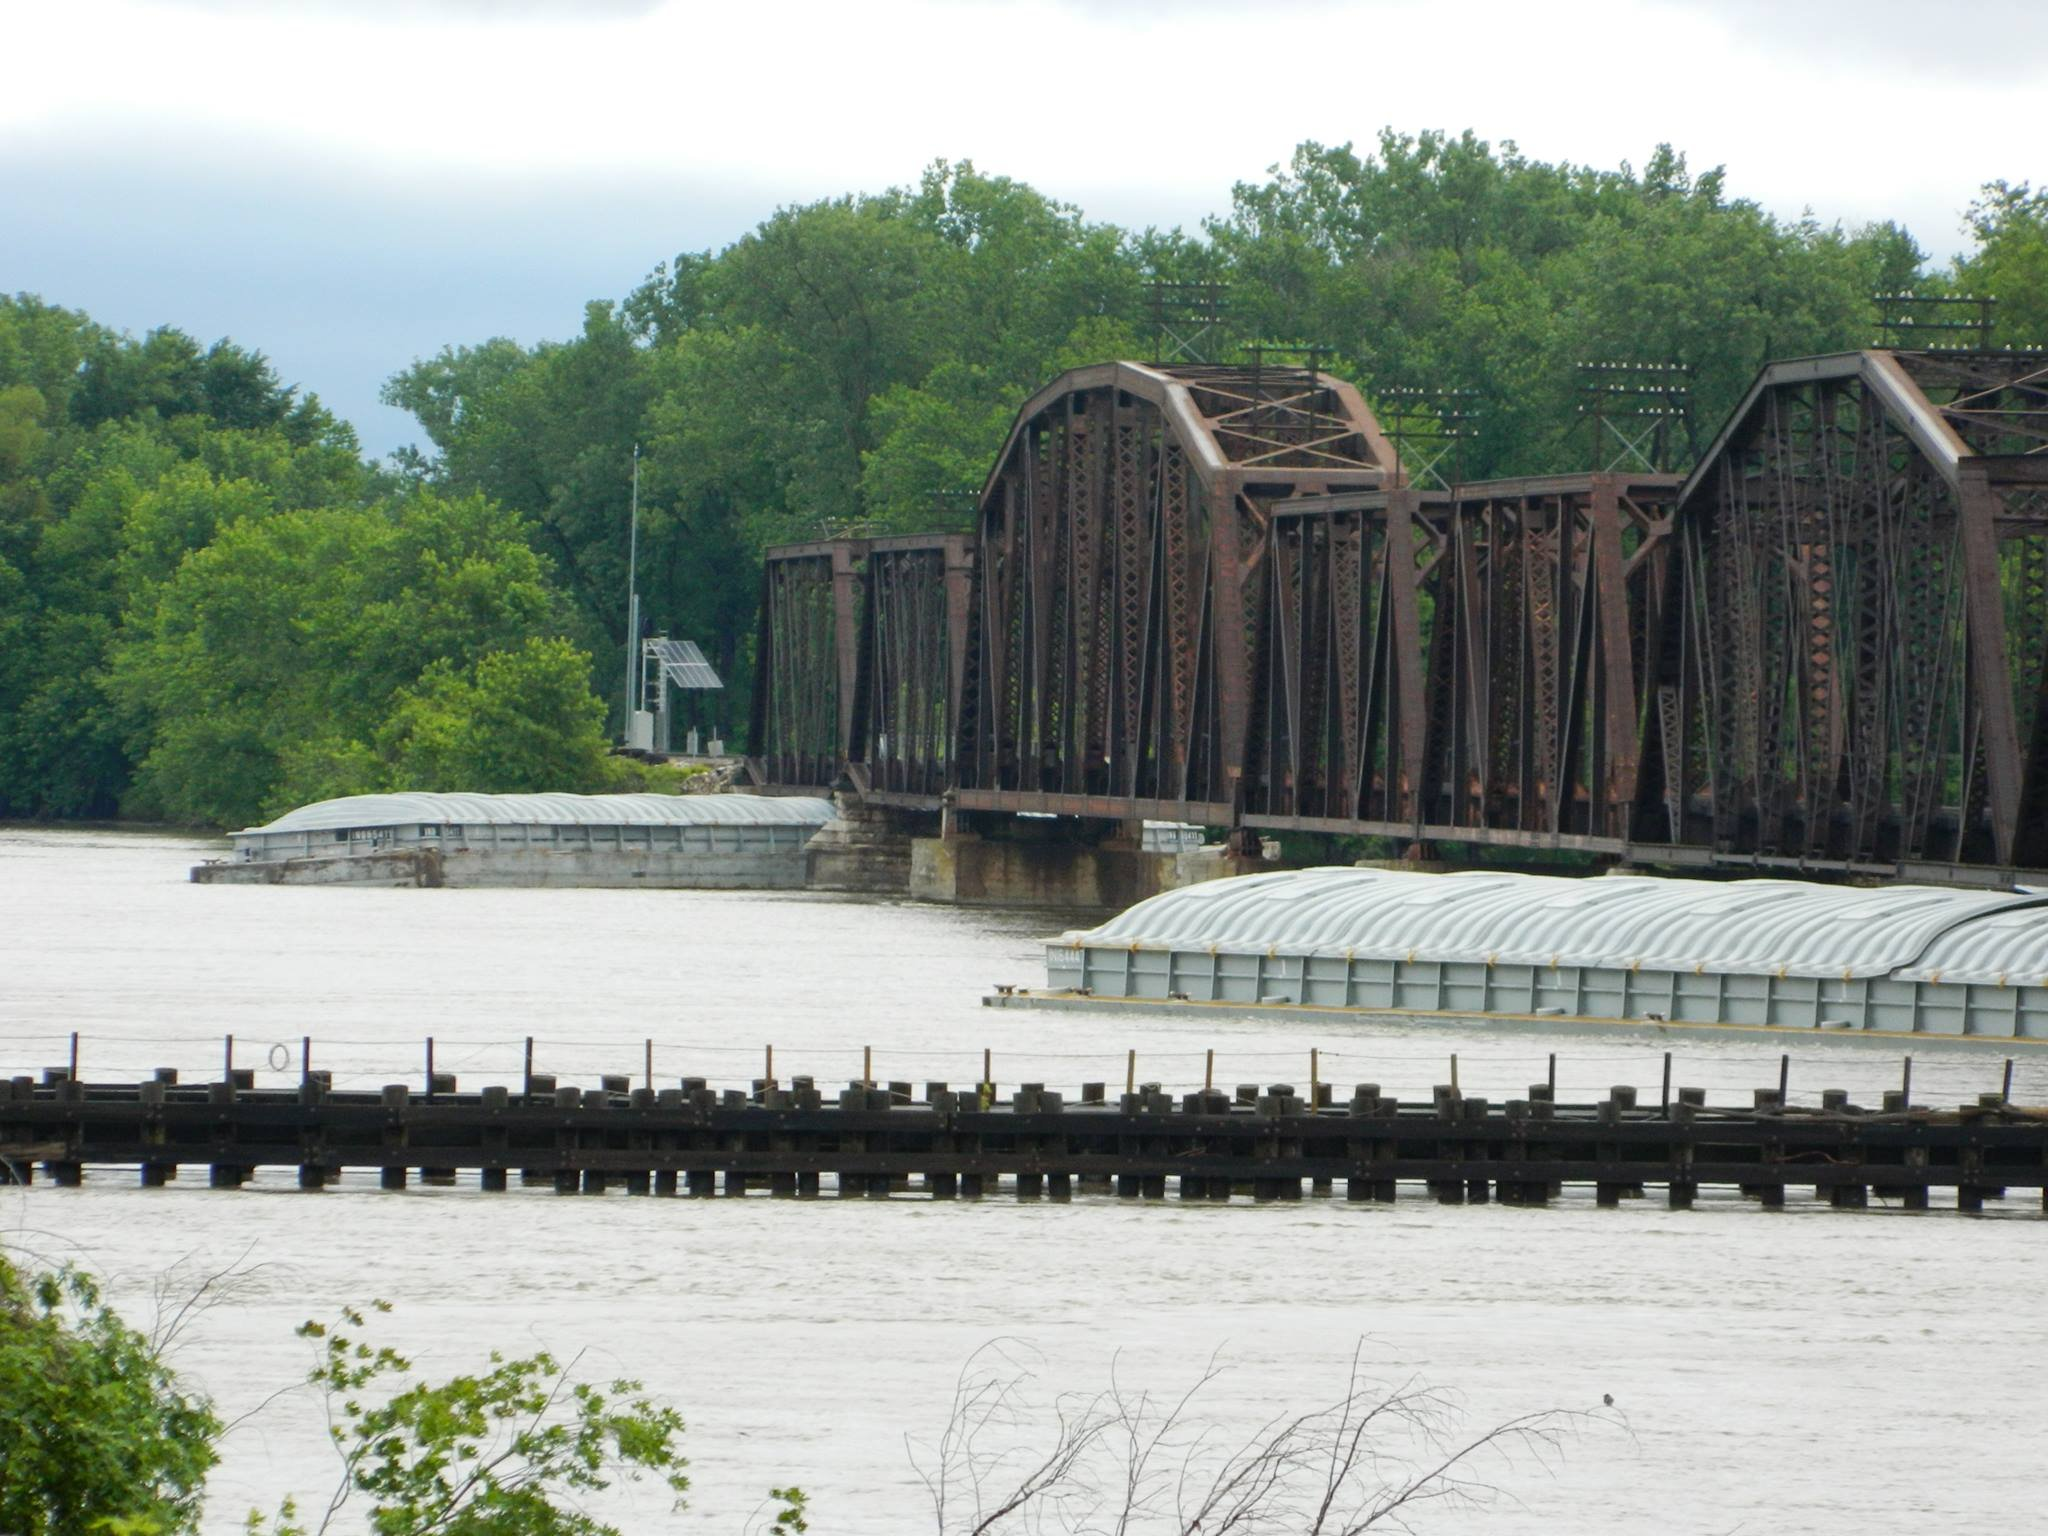 Submitted photo of barges stuck on the rail bridge south of the Champ Clark Bridge.